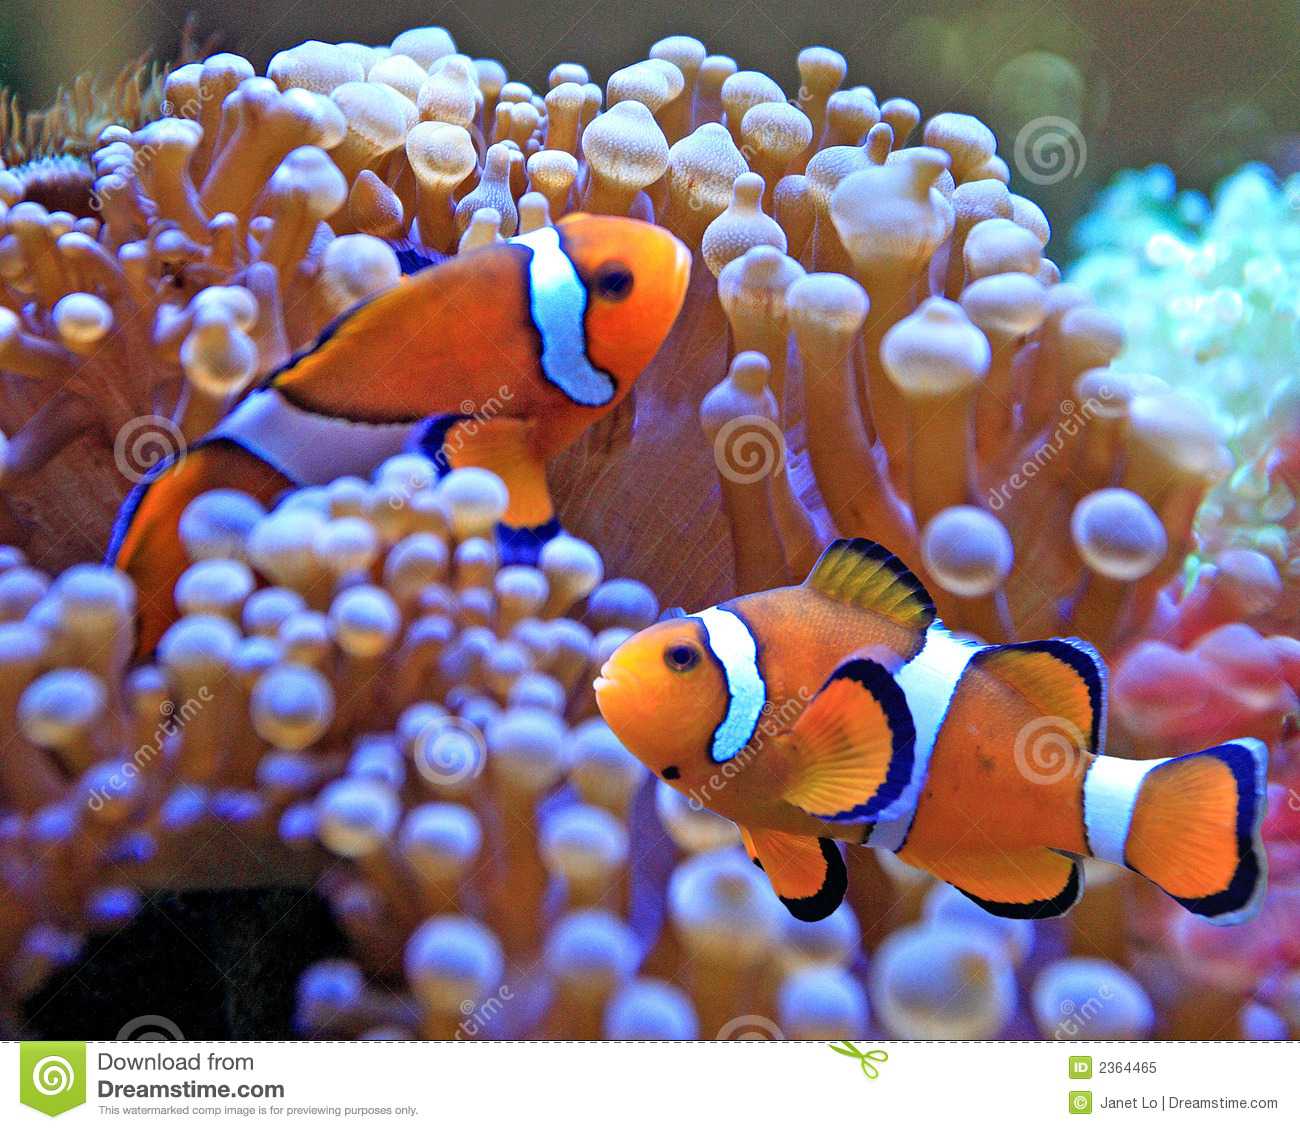 Clown fish royalty free stock photo image 2364465 for Photos of fish